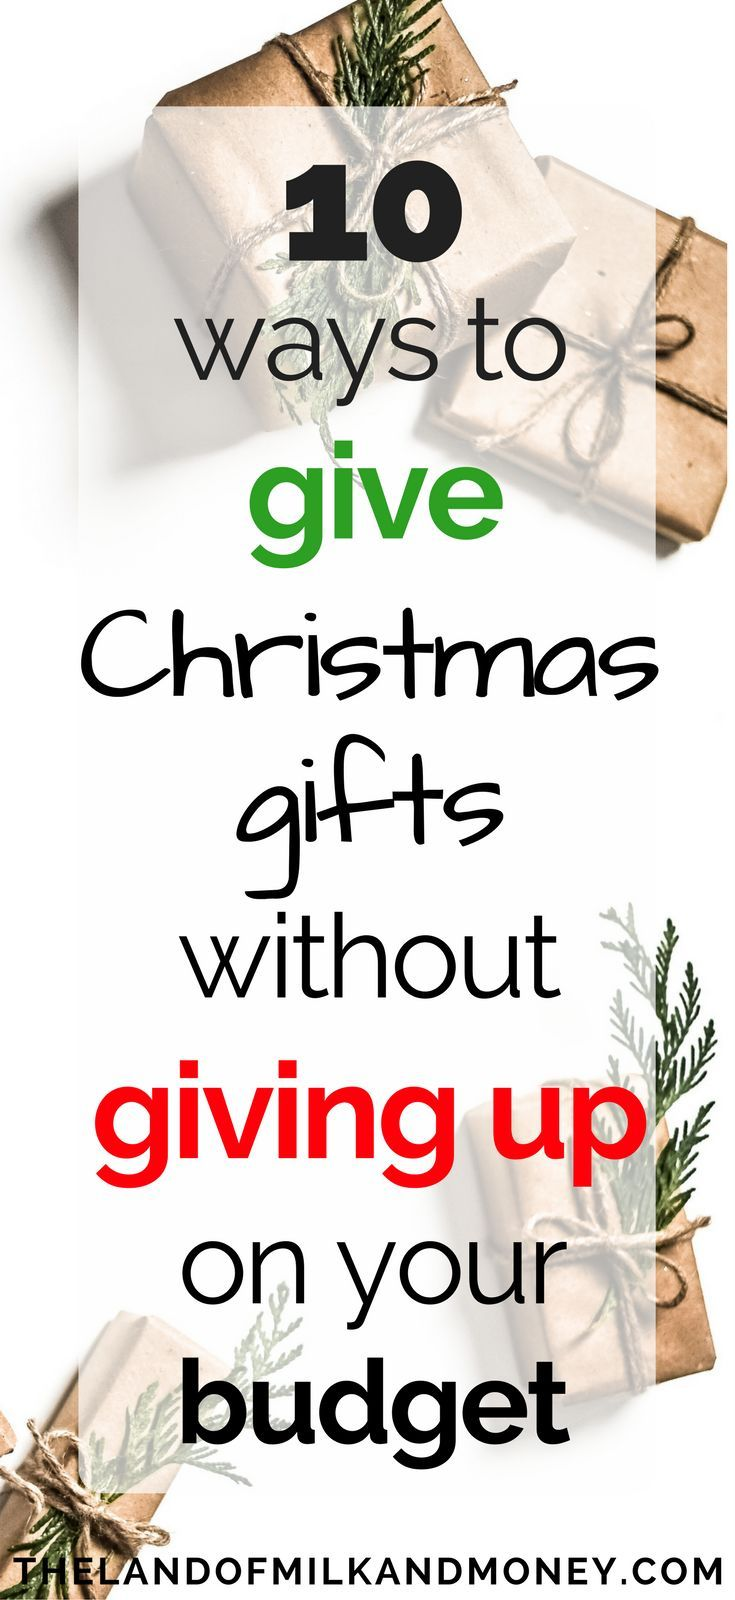 These ideas for cheap Christmas presents are SO good! It's going to be great to be able to give gifts to everyone without blowing our budget.